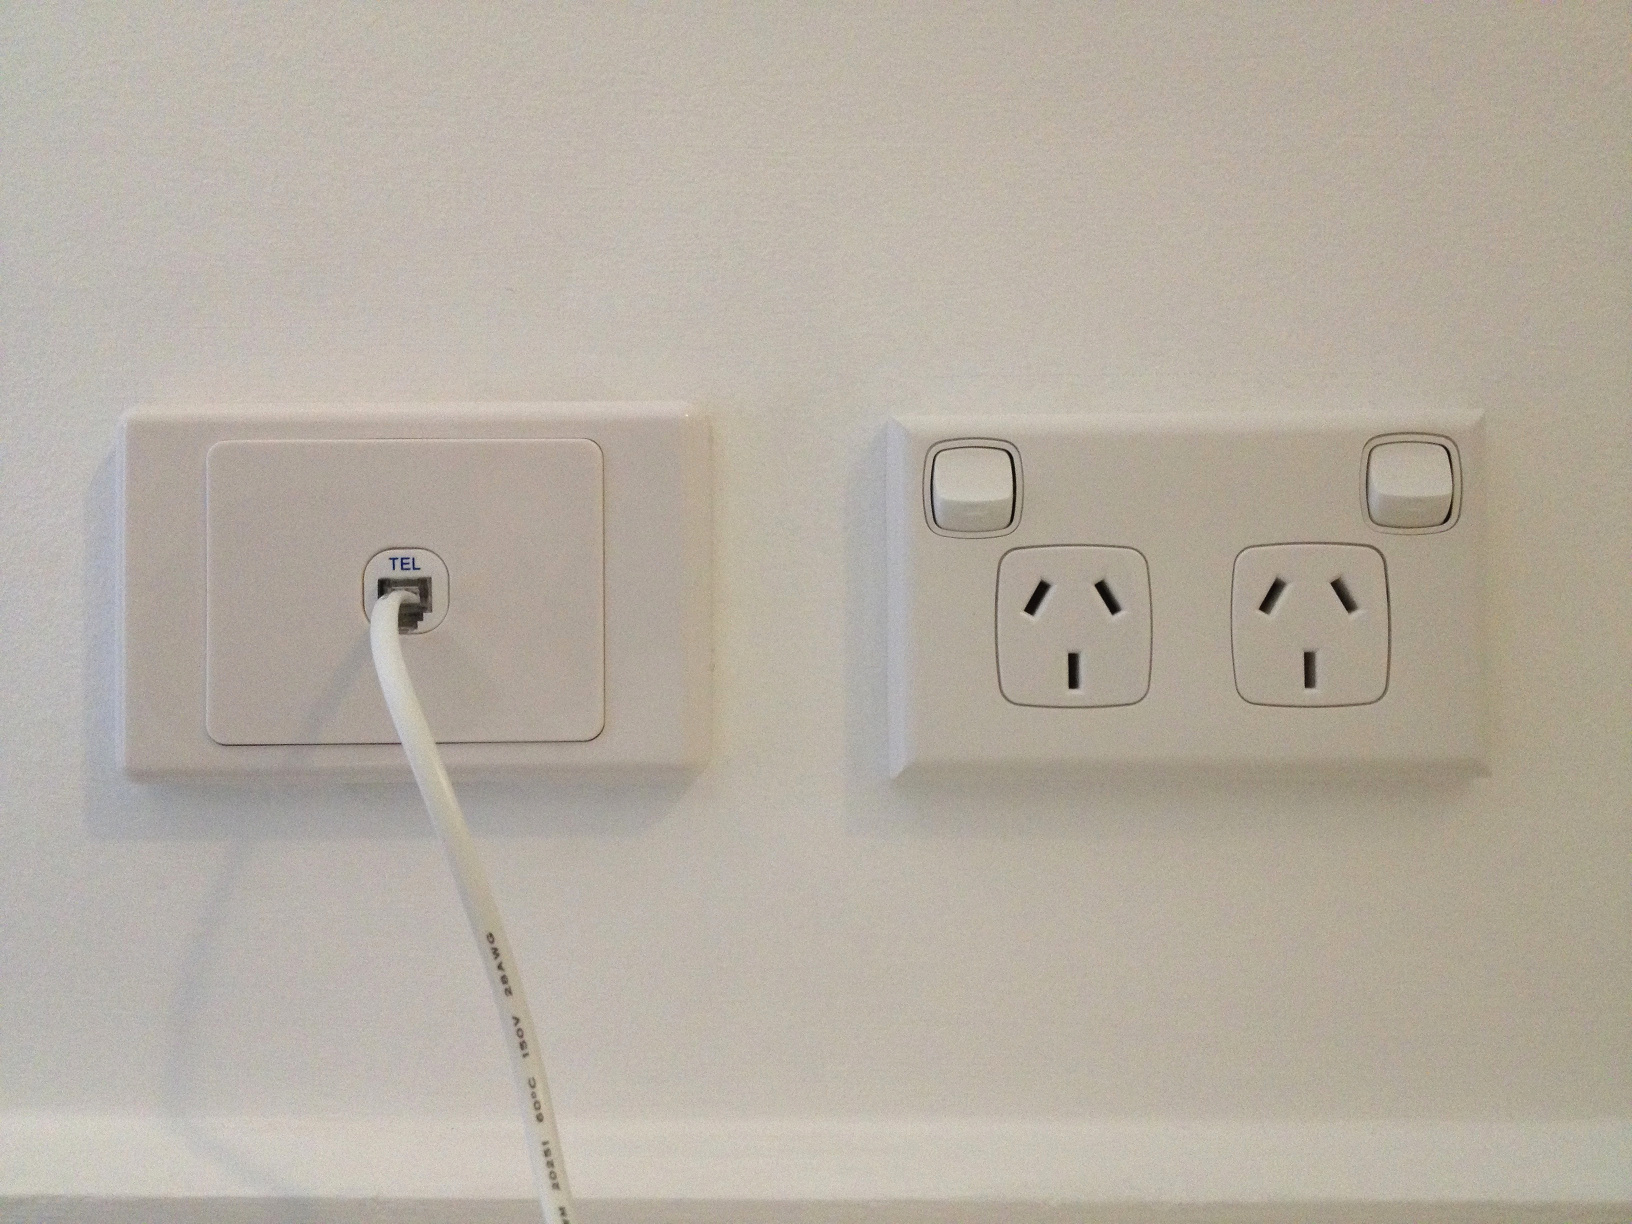 small resolution of upgrading a 600 series phone socket to rj11 tp69 socket outlet google on australian telephone wall socket wiring